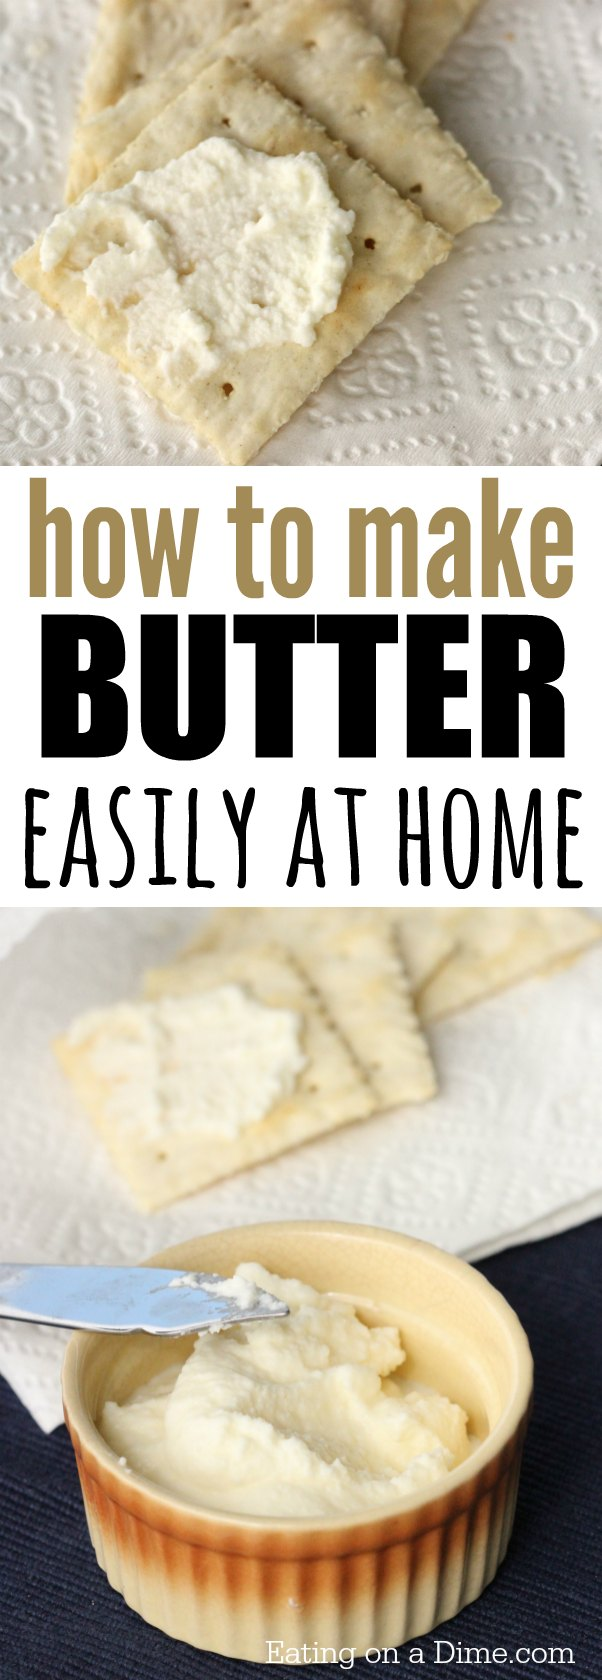 Homemade butter recipe. How to make butter with heavy whipping cream that tastes great. Making butter at home is super easy.